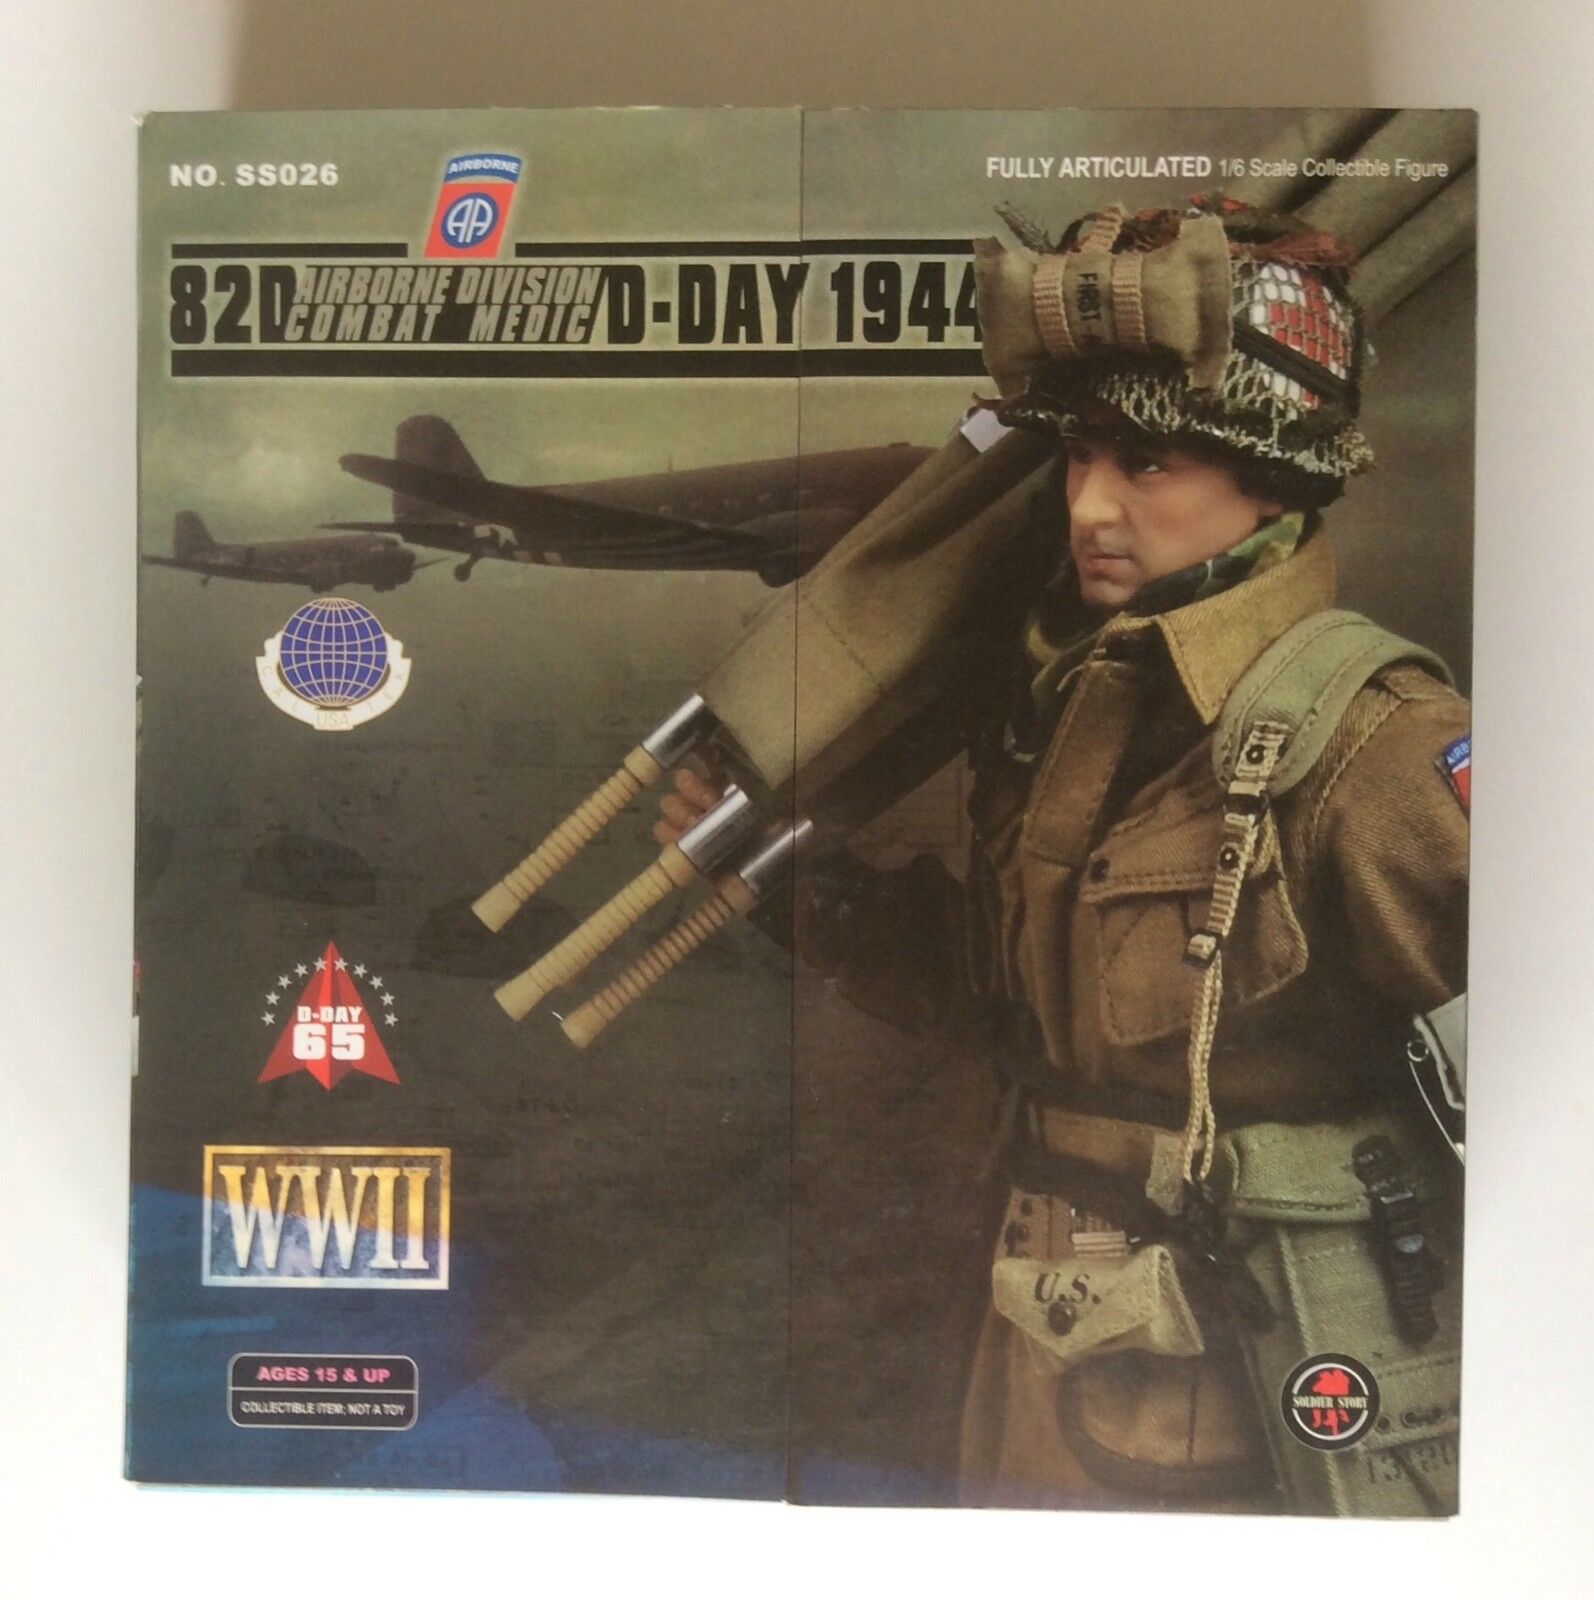 Soldier Story 1 6 WW2 US 82nd Airborne Combat Medic Normandy 1944 Boxed figure